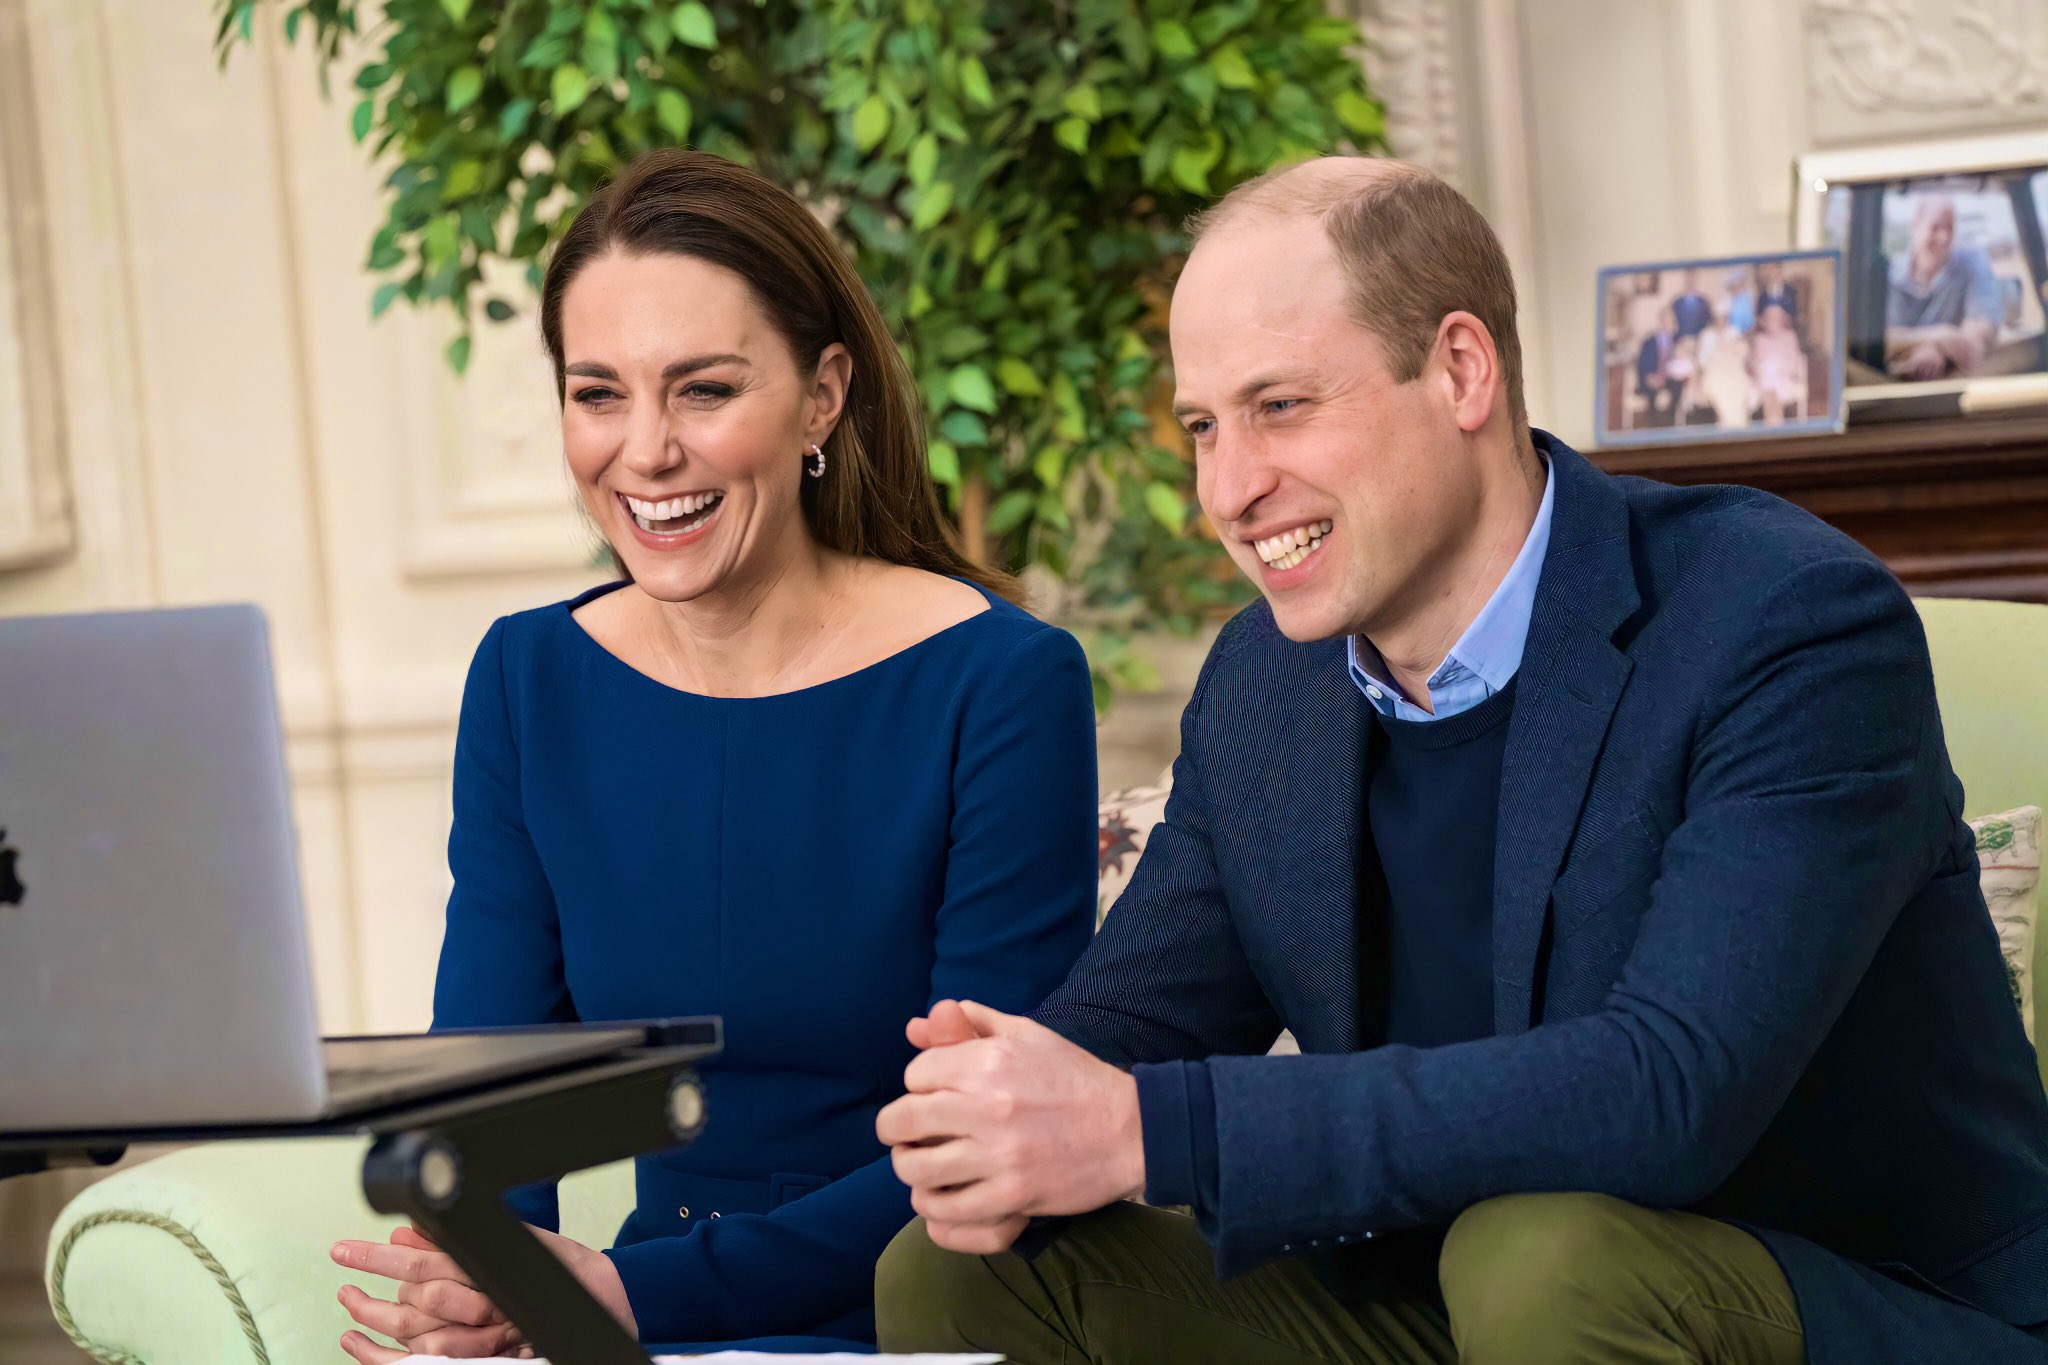 how badly they wanted to hurt The Duke and Duchess of Cambridge, Prince William and Catherine. The mentality of 'if we can't have it we won't let you have it' was glaringly obvious.